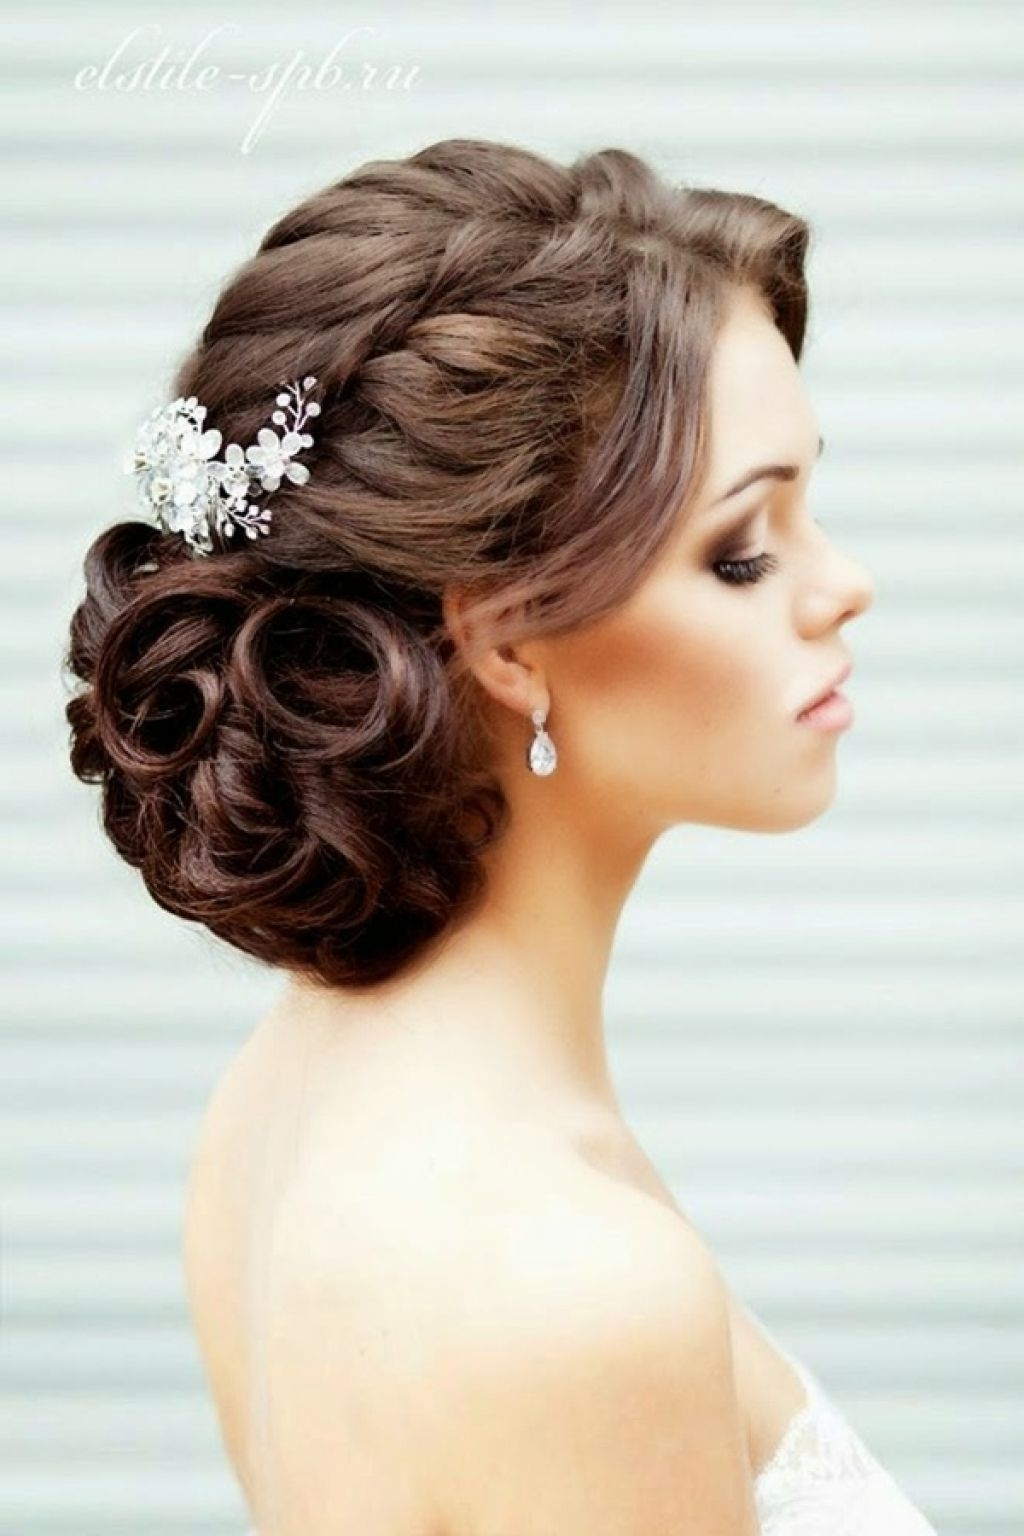 2017 Updo Wedding Hairstyles For Long Hair Inside 3 Easy Updo Hairstyles For Long Hair Hairstyle Tips Bridesmaid (View 5 of 15)